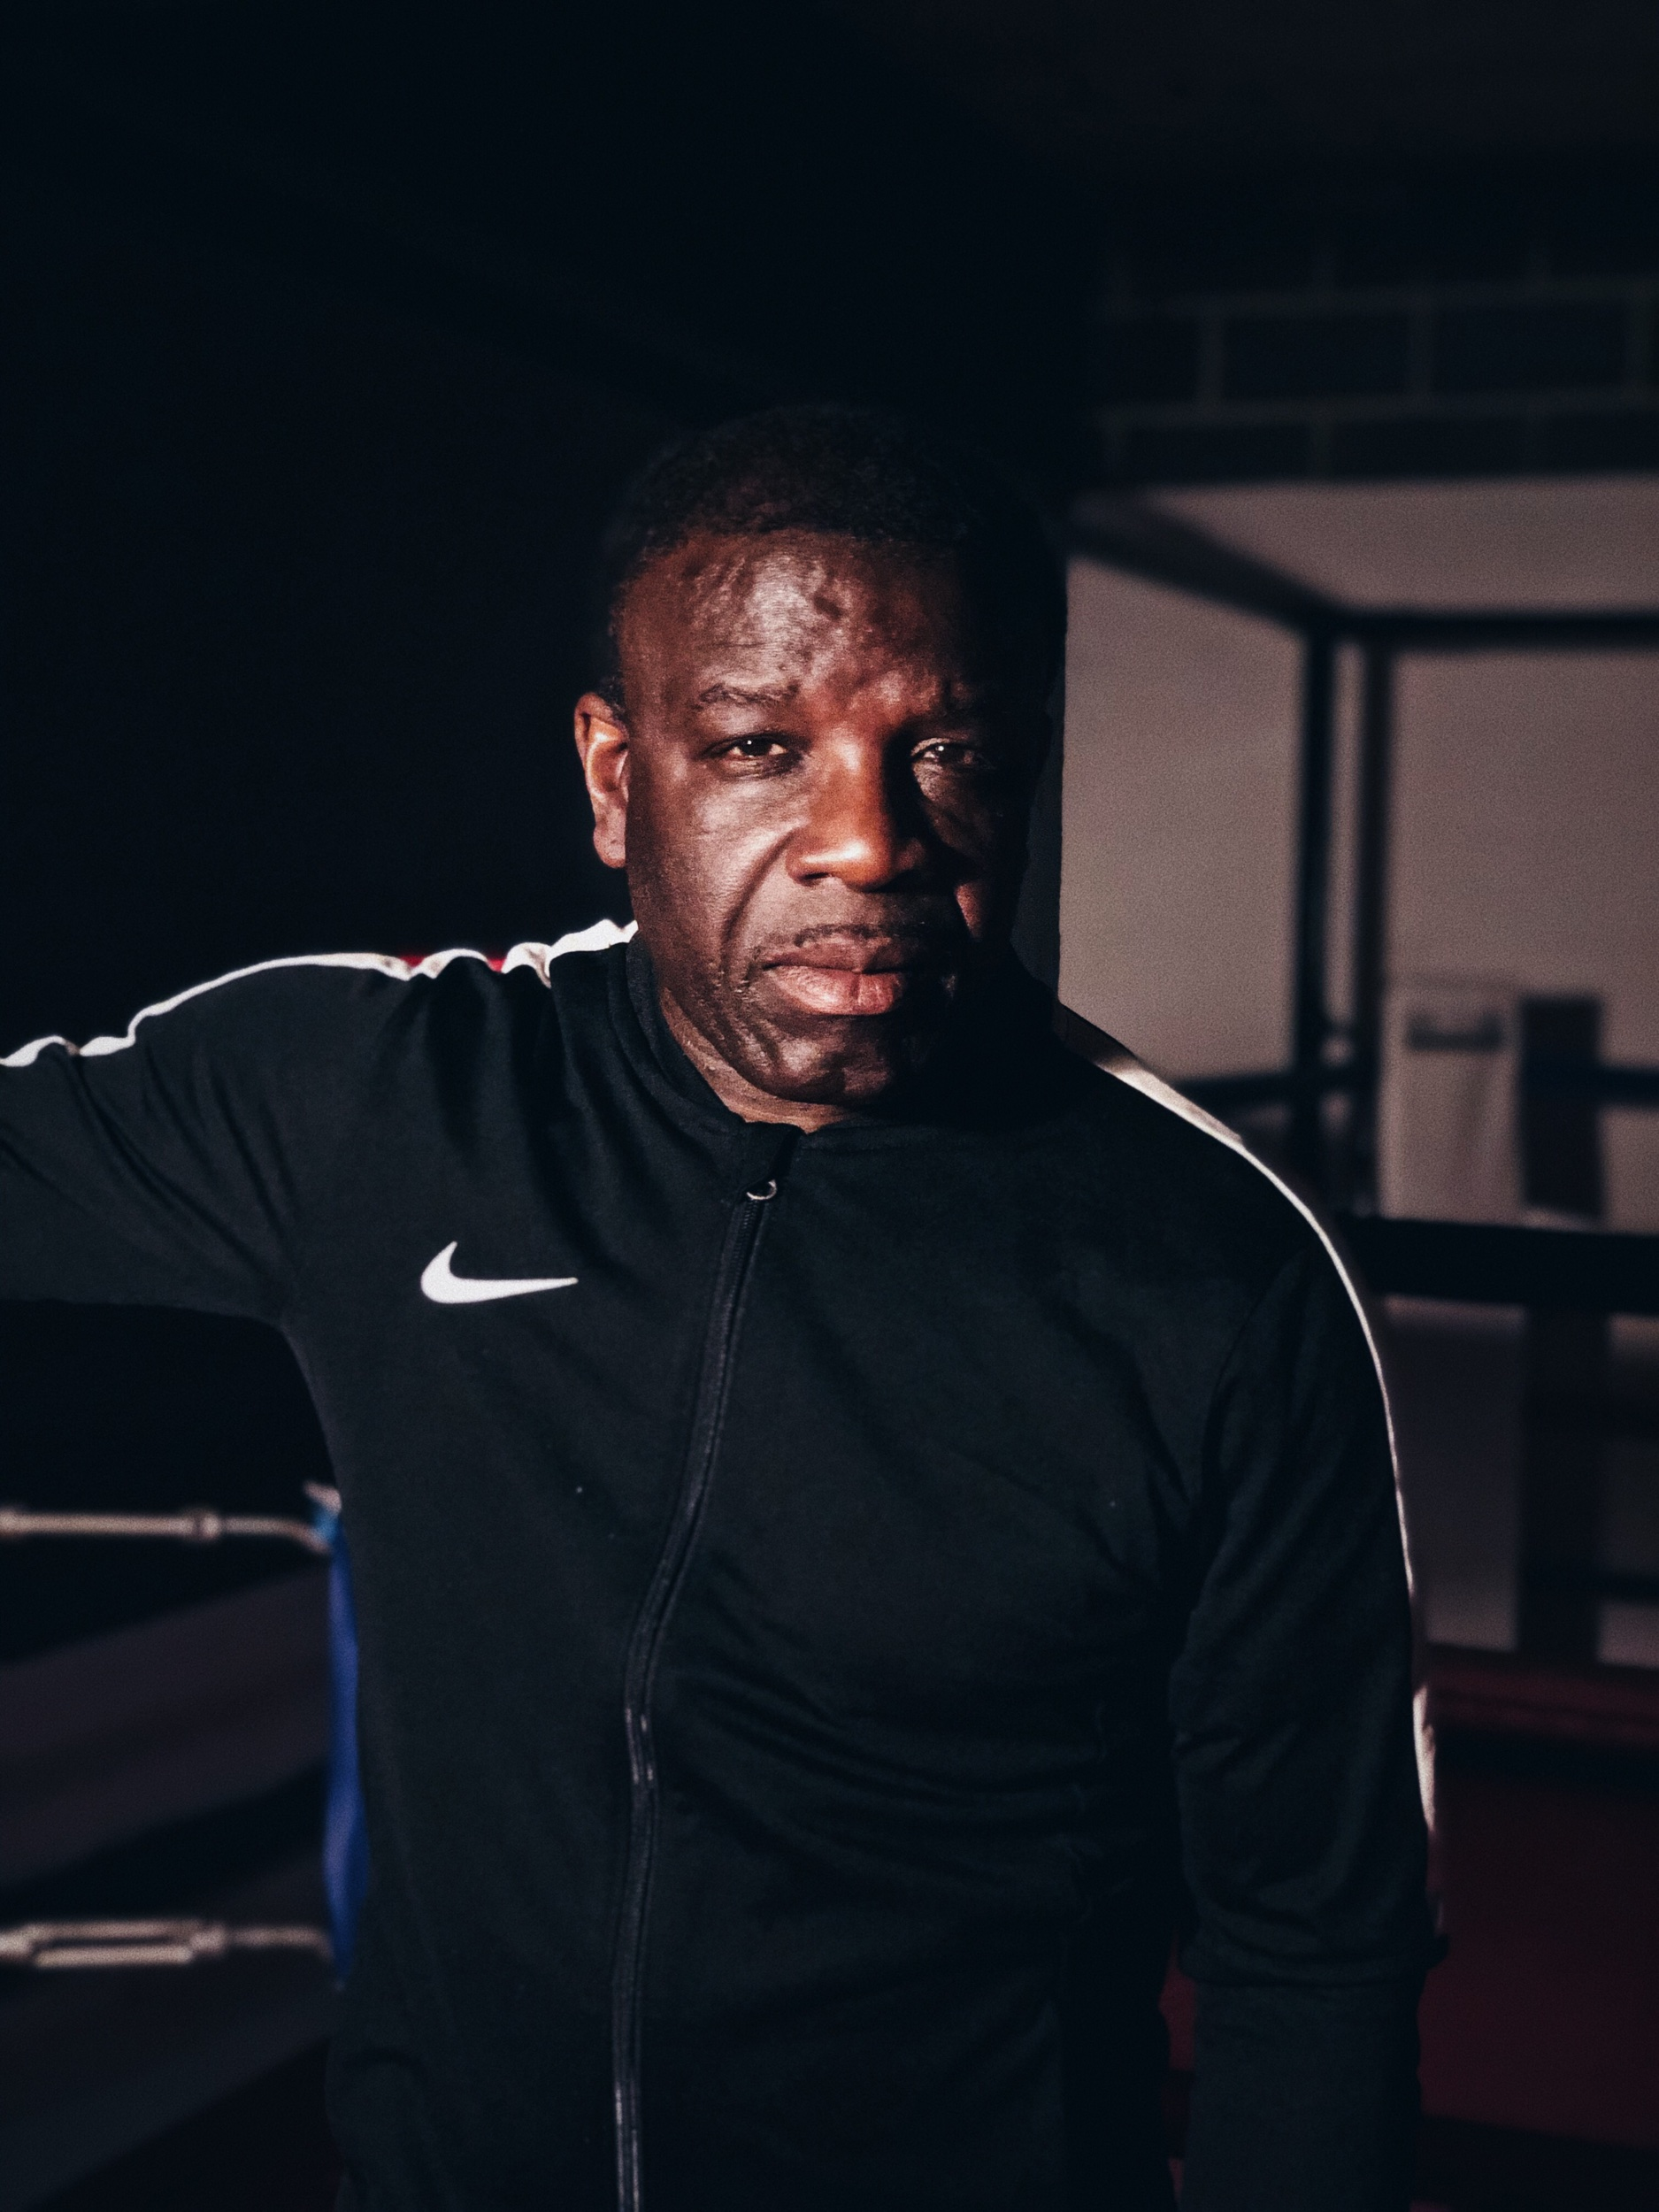 Clinton McKenzie is a former British and European Boxing Champion, Olympic Finalist and winner of 2 Lonsdale's belt. - Clinton represented England and Great Britain throughout his amateur career which culminated in representing Great Britain at the 1976 Olympics in Montreal, Canada.Clinton has been boxing for over 40 years and training people in boxing for over 20.He runs a warm and friendly gym and he will motivate and inspire you to get fit without getting hit!